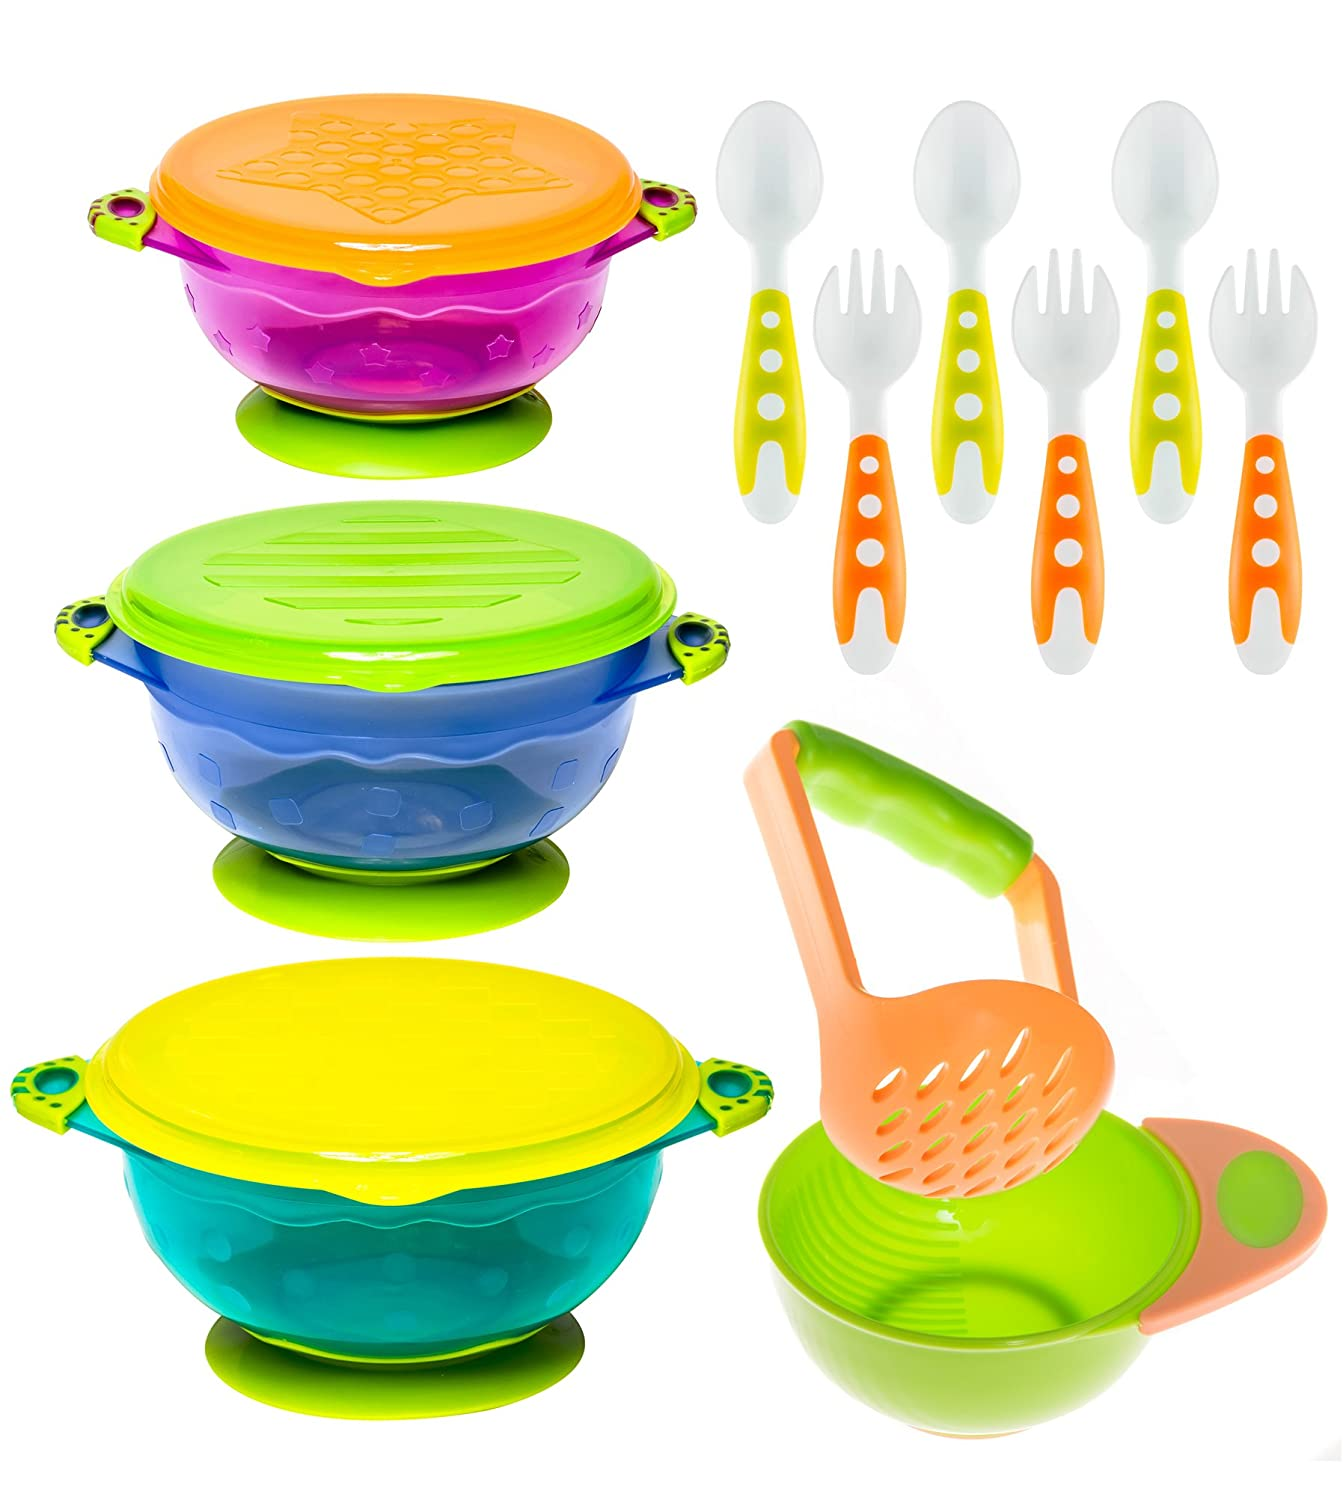 Top 9 Best Baby Bowls and Plates Reviews in 2019 2